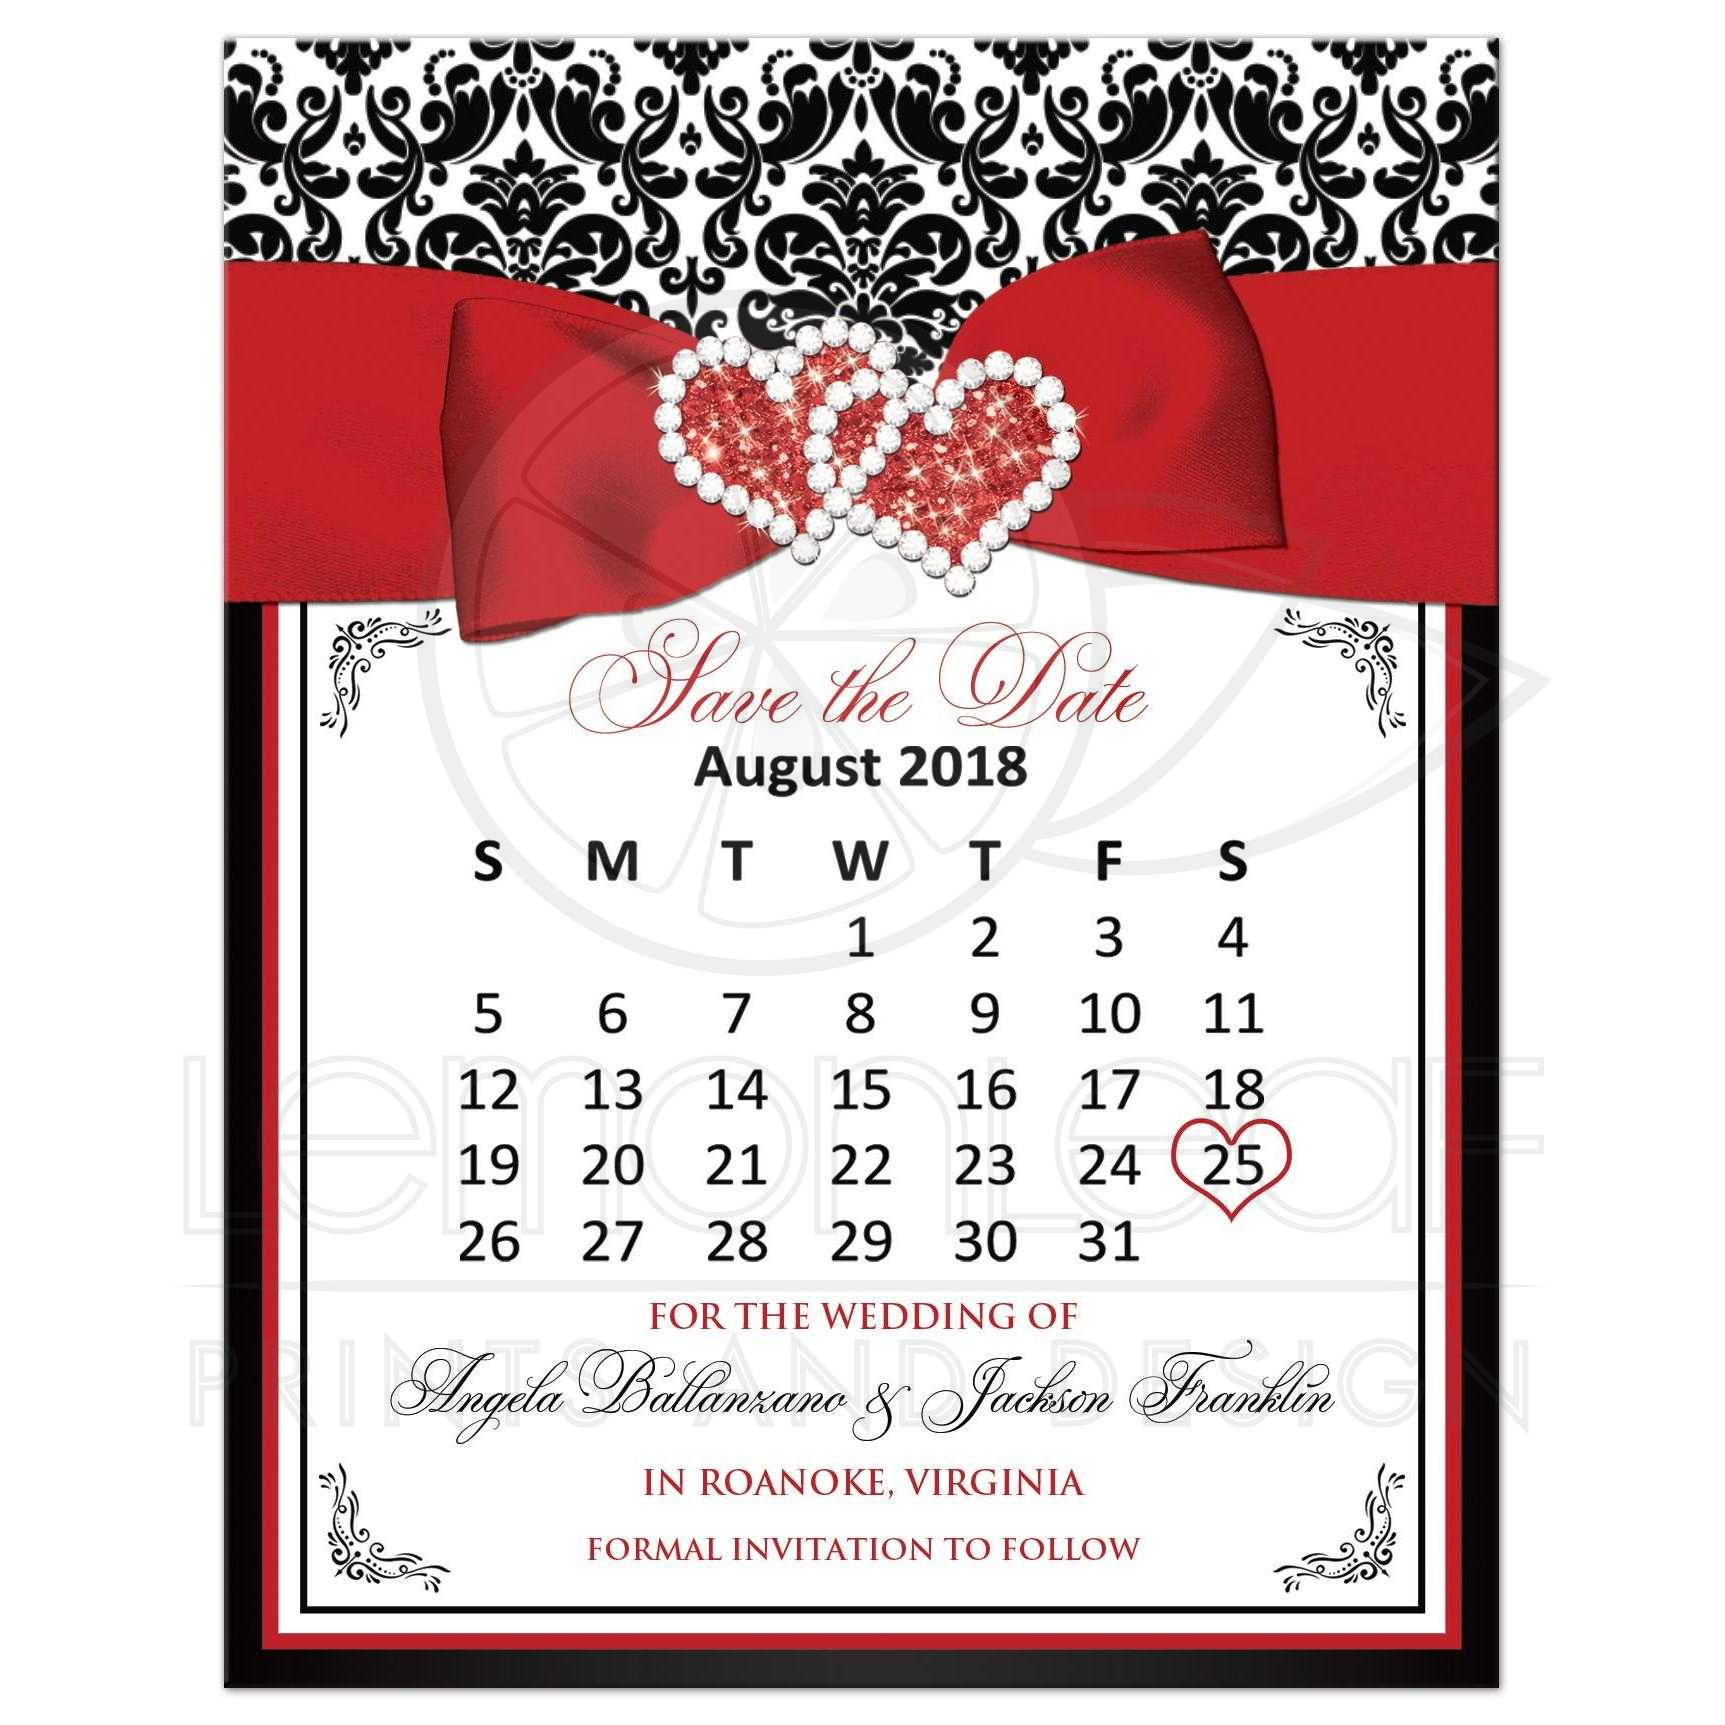 black and white damask wedding save the date mini calendar card with red ribbon